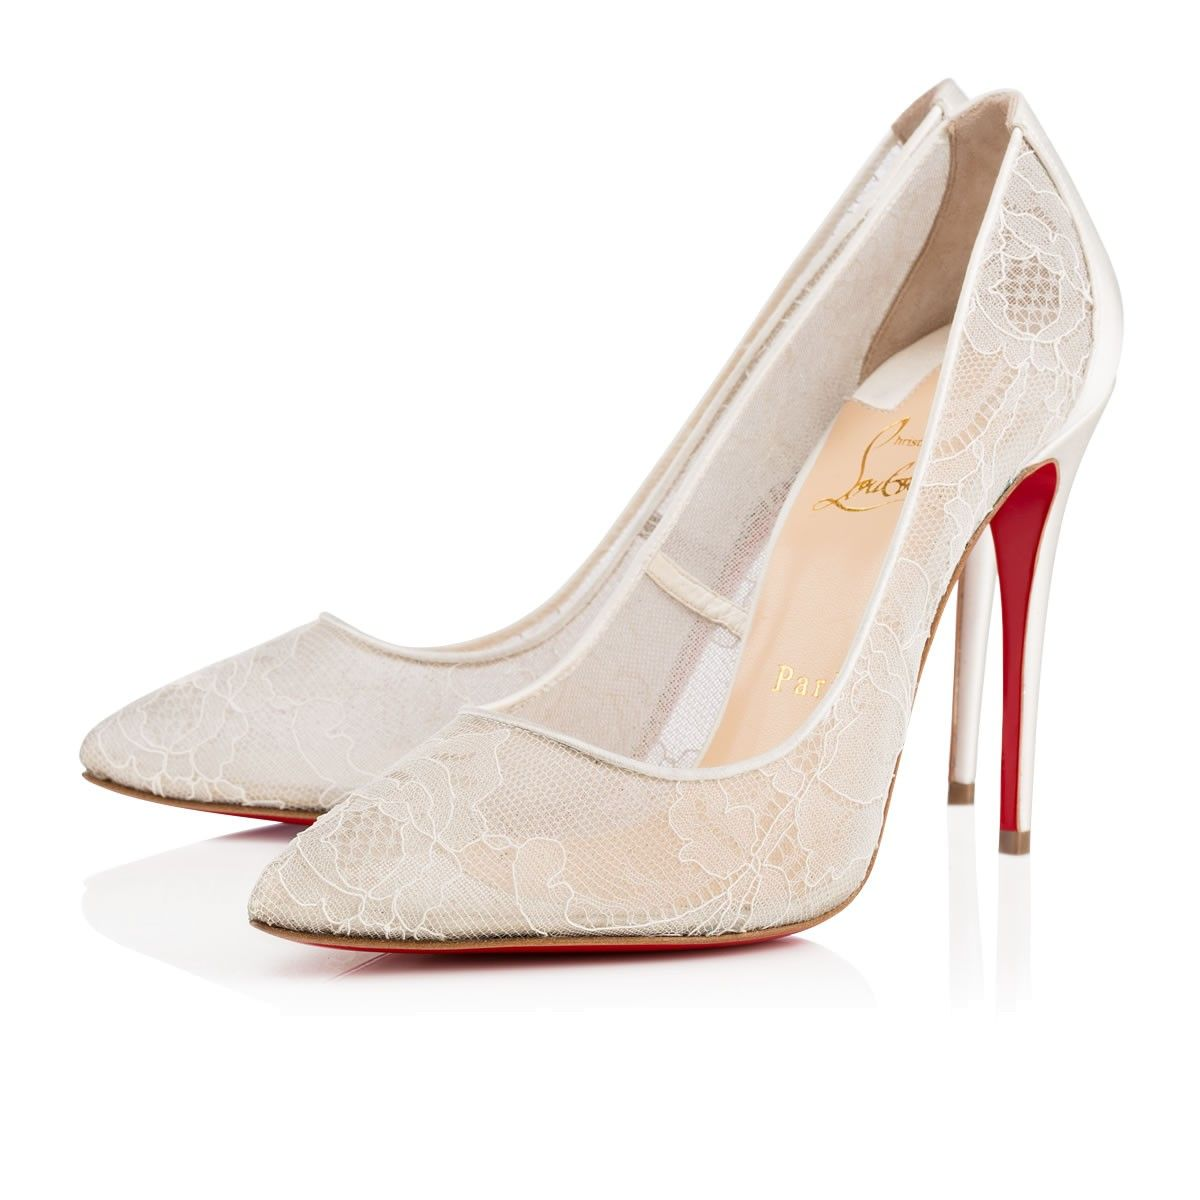 christian louboutin bridal shoes for sale